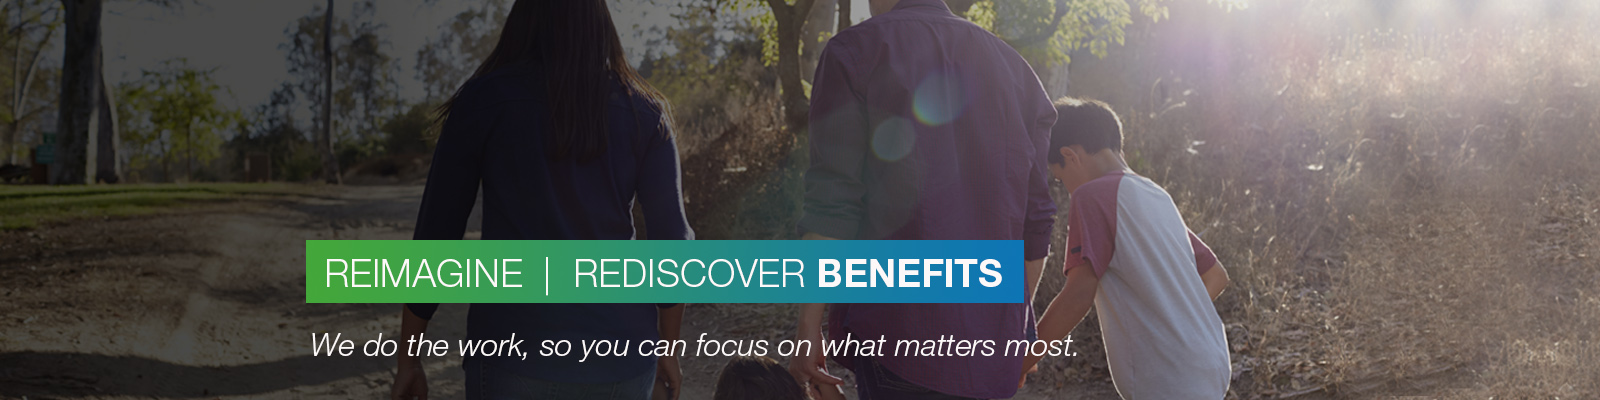 REIMAGINE | REDISCOVER BENEFITS: We do the work, so you can focus on what matters most.